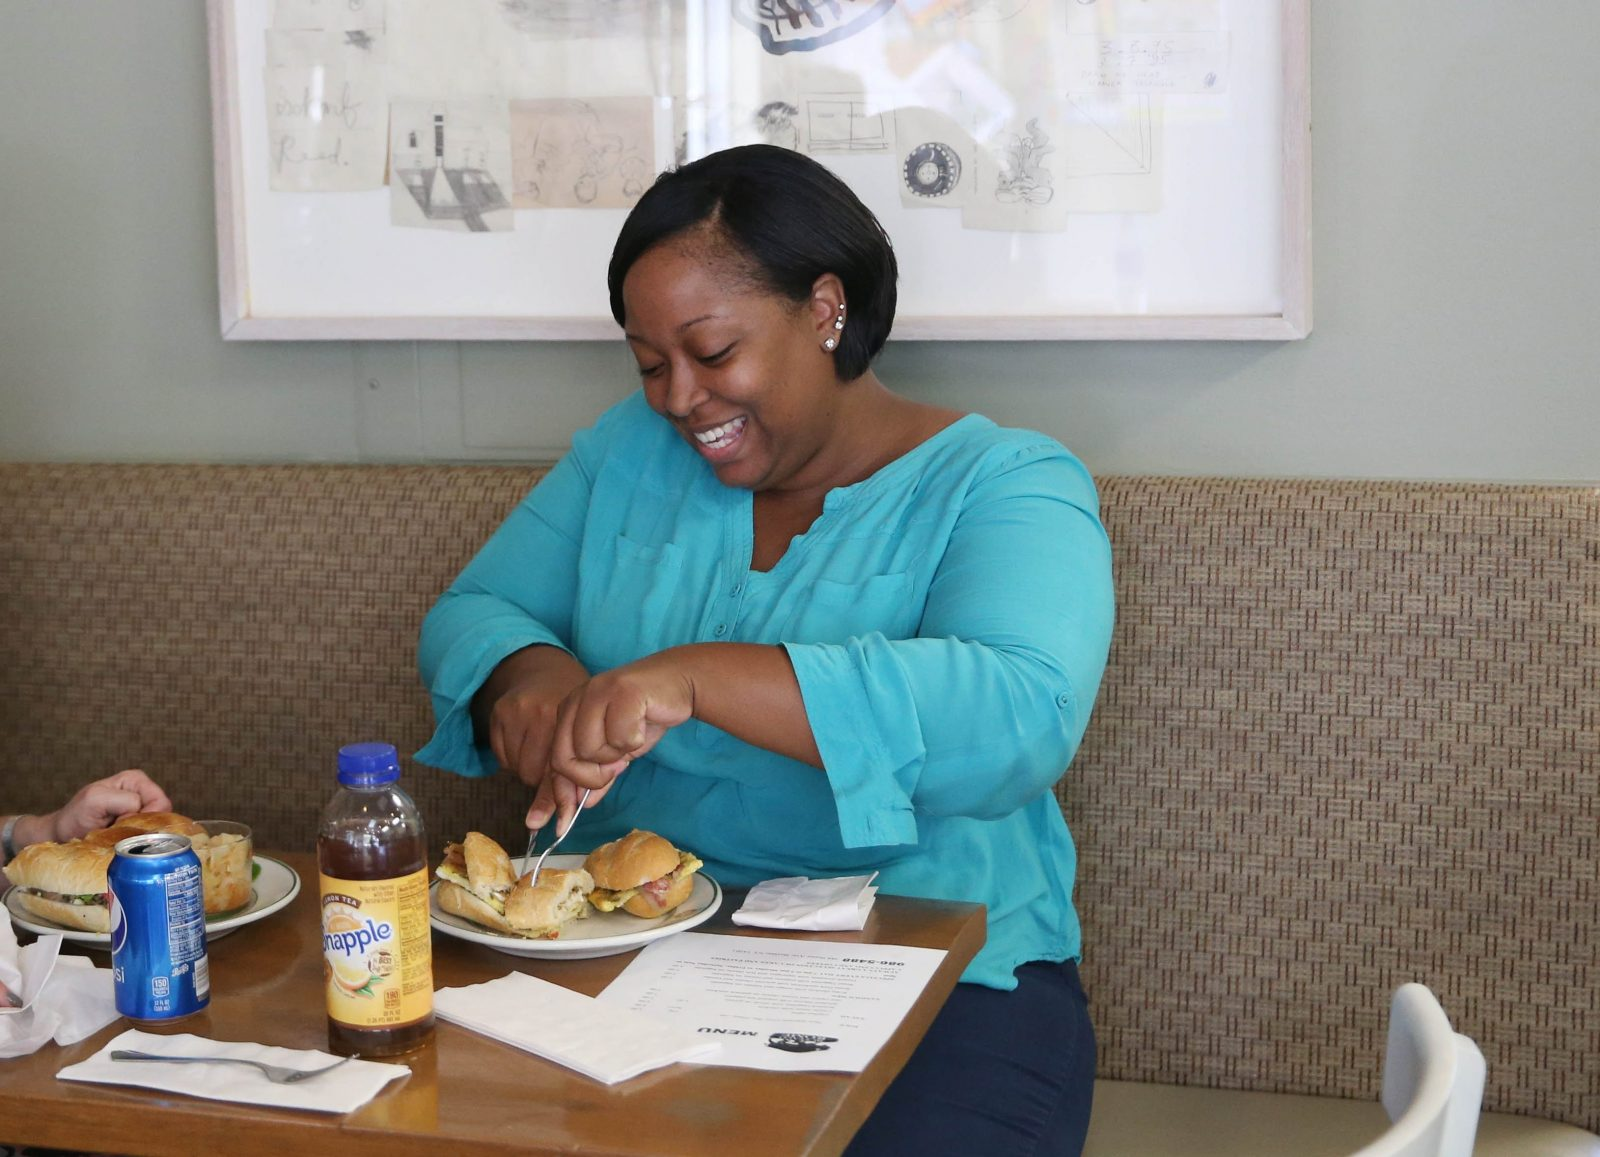 Buffalo Rome is at 388 Porter Ave. in Buffalo. Darlene Grillo, left and Antoinette Dato enjoy their  lunch.  They work nearby at D'Youville College.  Photo taken, Tuesday, Sept. 20, 2016.  (Sharon Cantillon/Buffalo News)